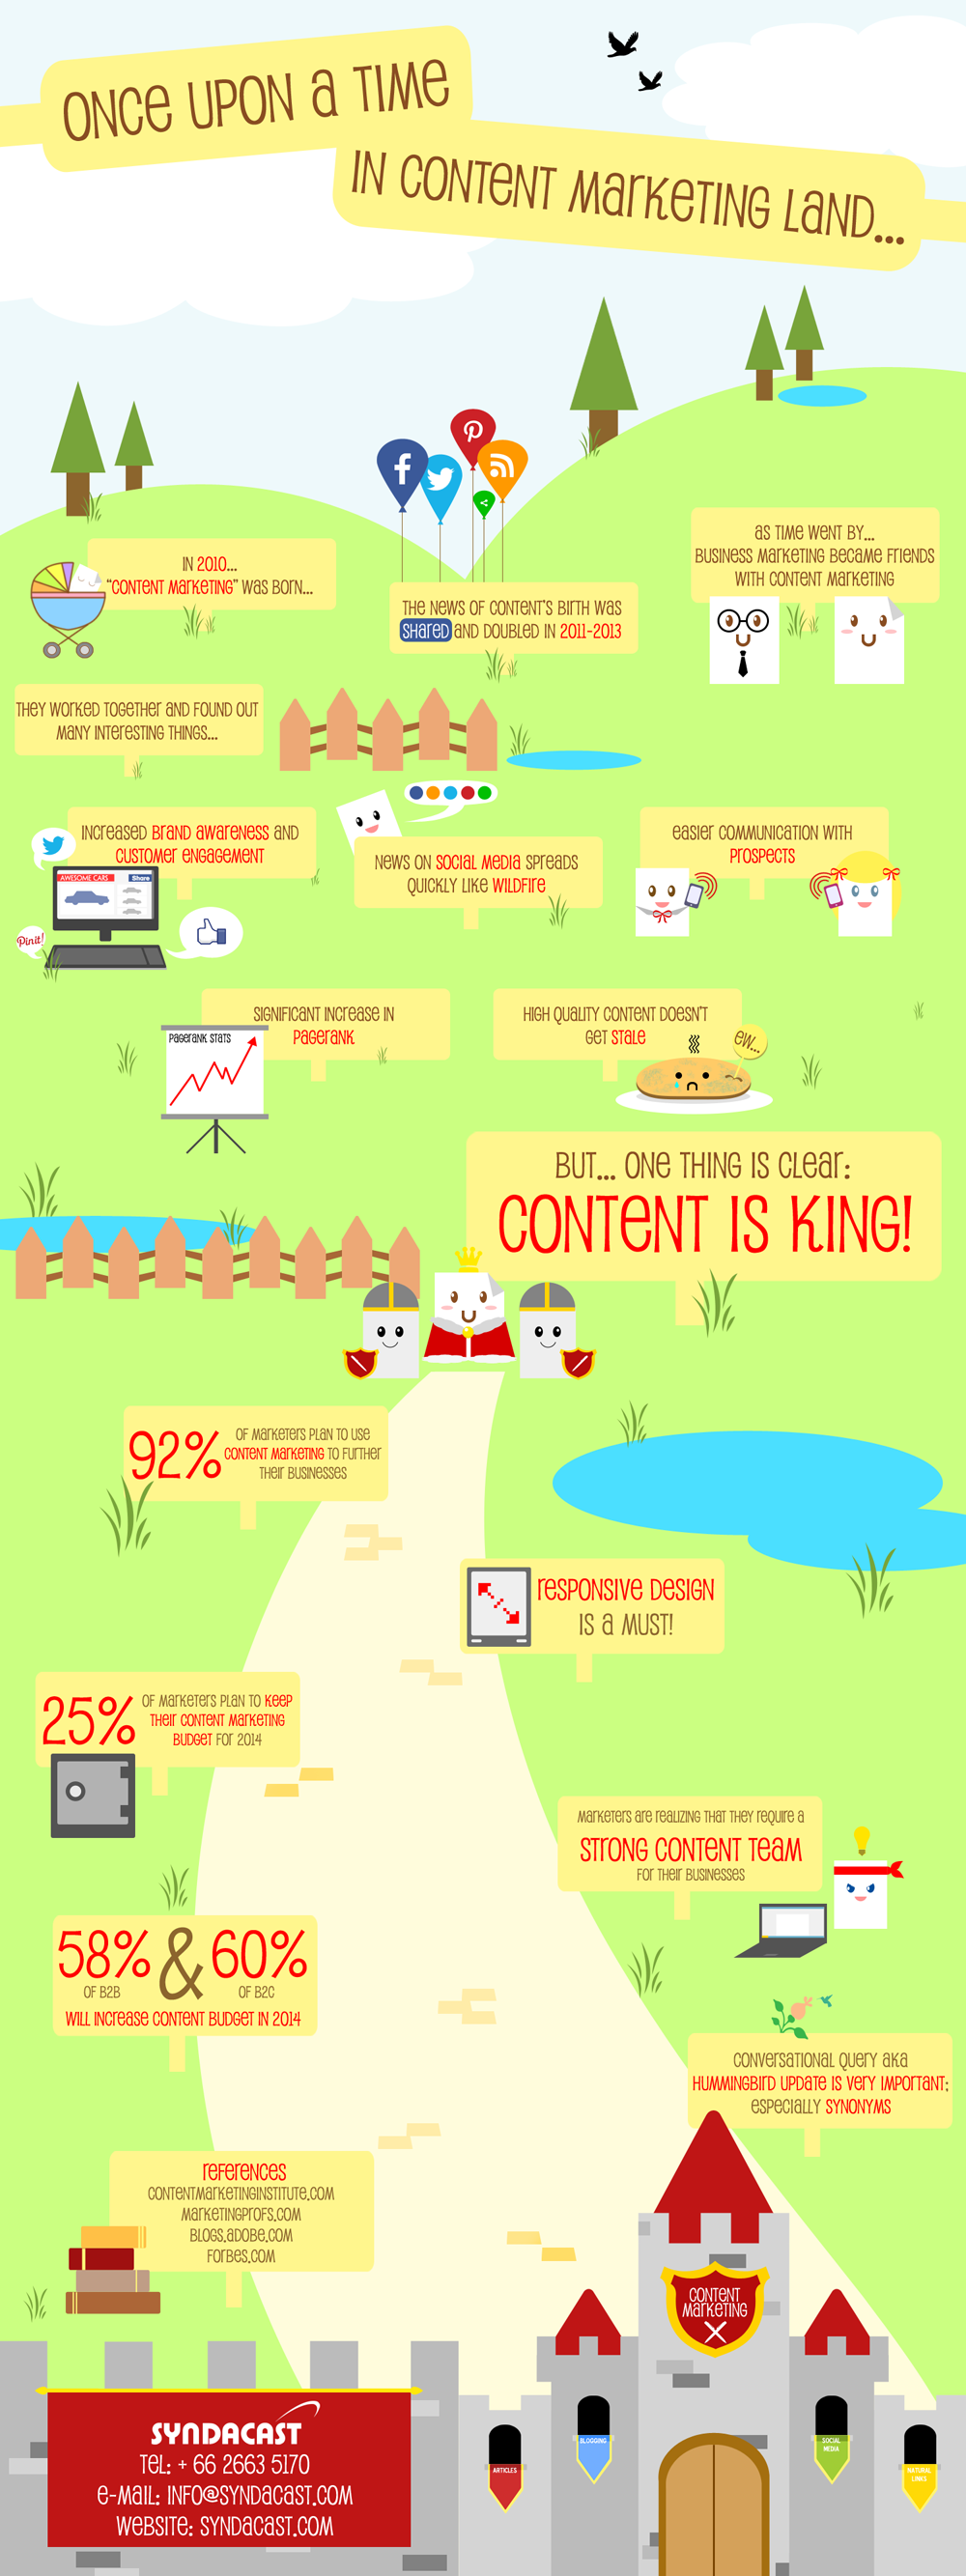 #ContentMarketing Land - #infographic #socialmedia